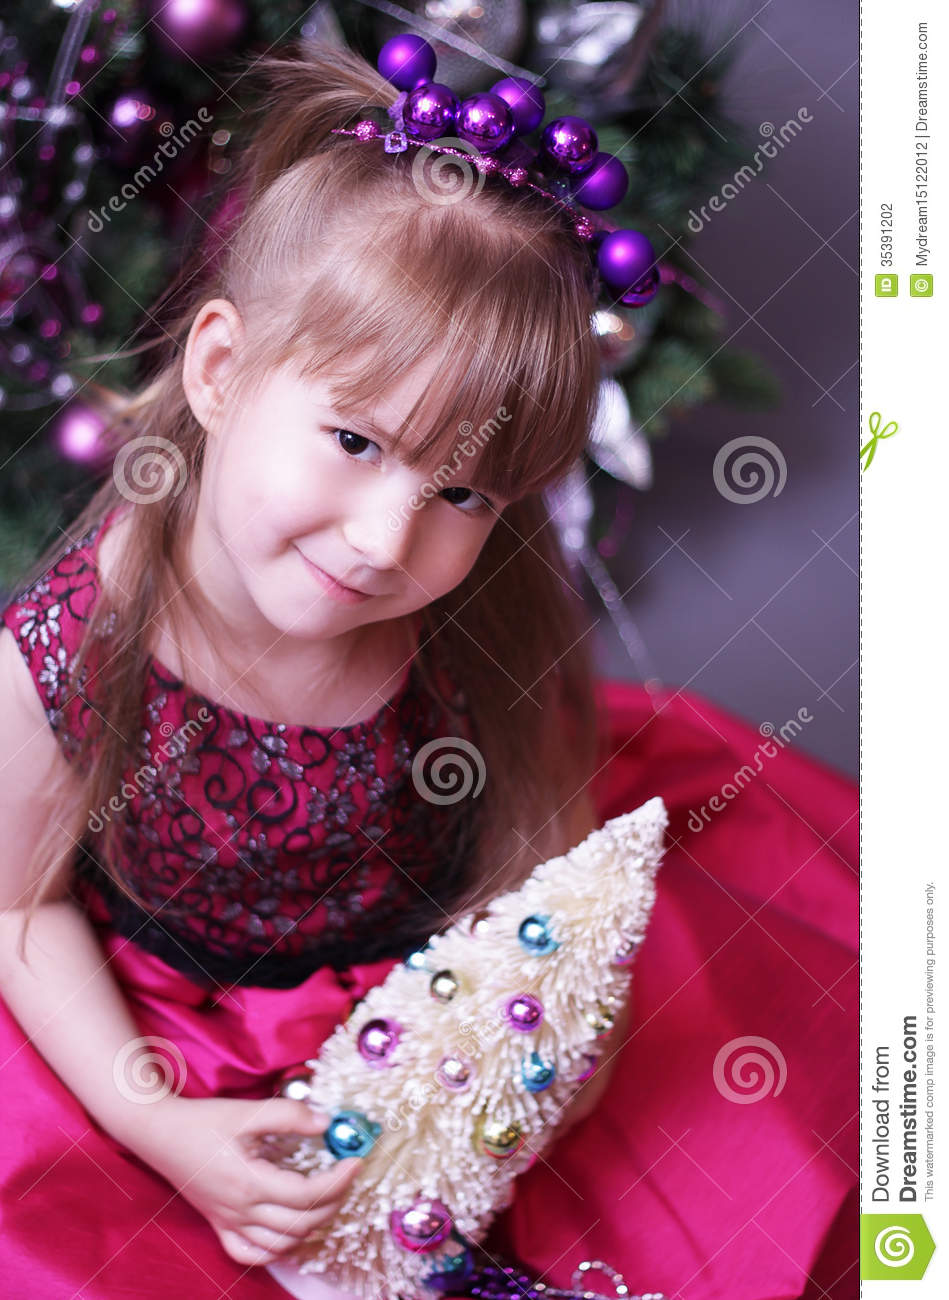 cute kid with christmas tree stock photo - image of happiness